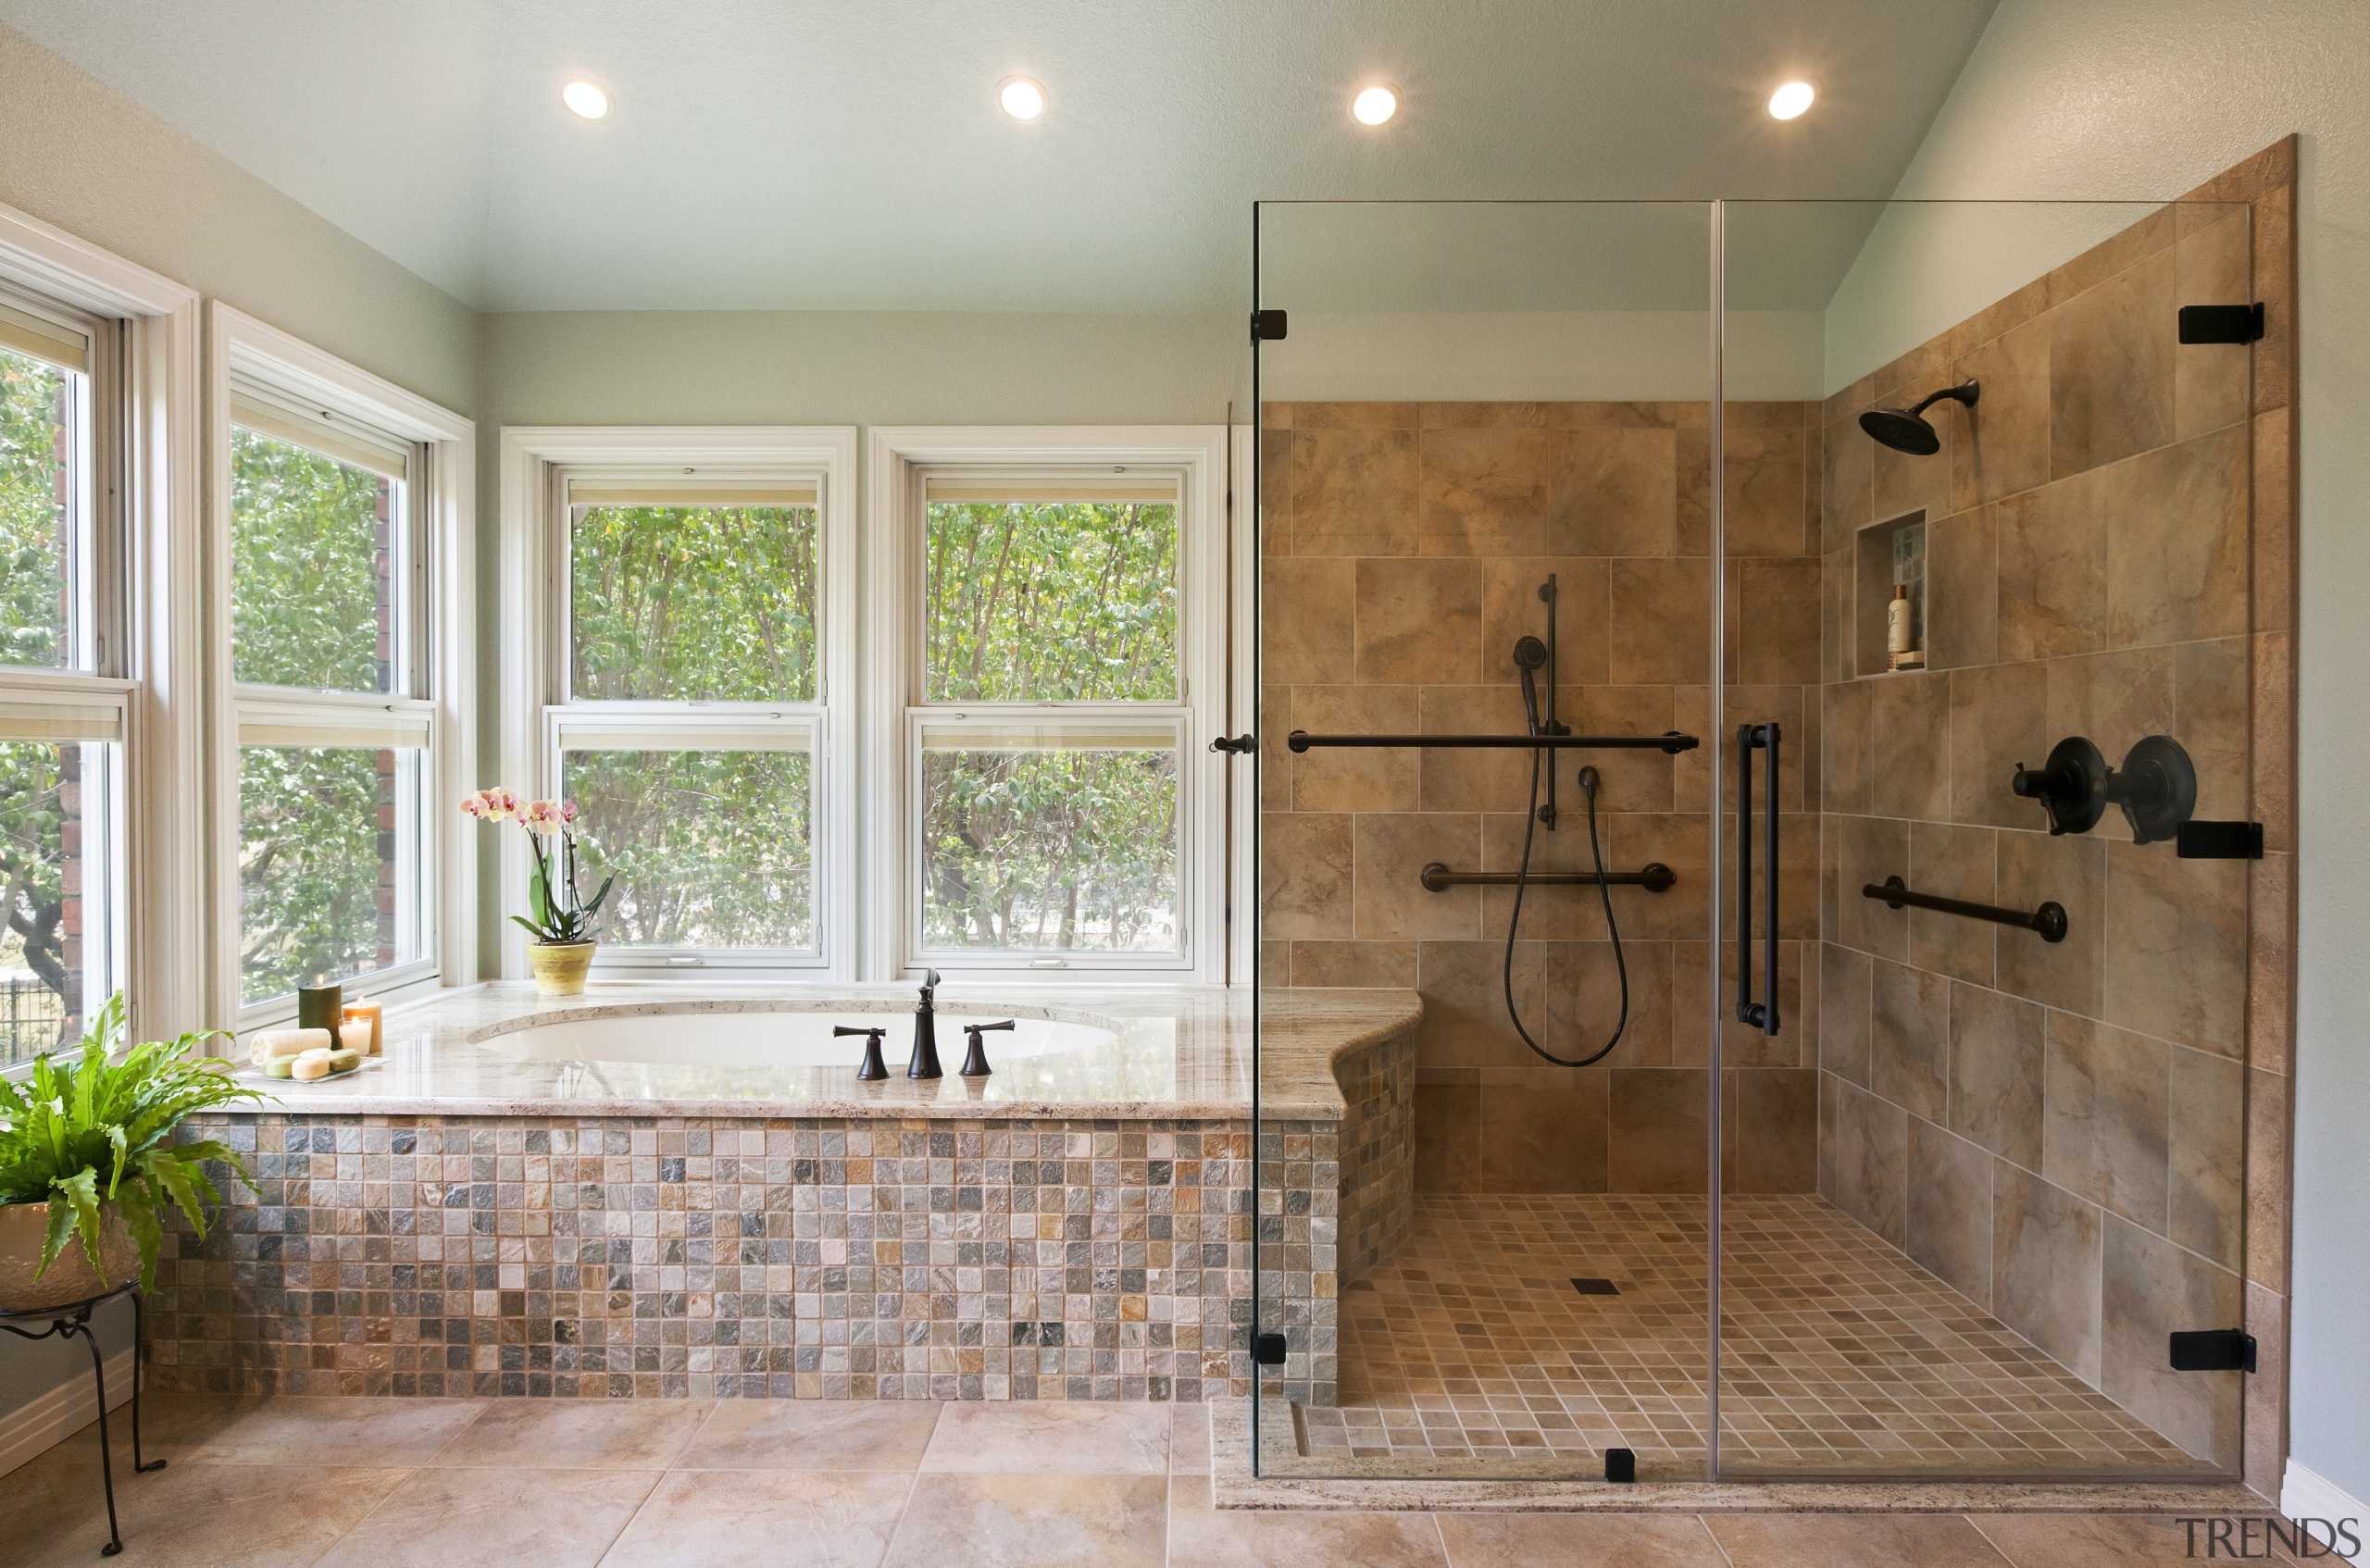 The threshold of this shower was lowered to bathroom, countertop, estate, floor, flooring, home, interior design, plumbing fixture, room, tile, wall, gray, brown